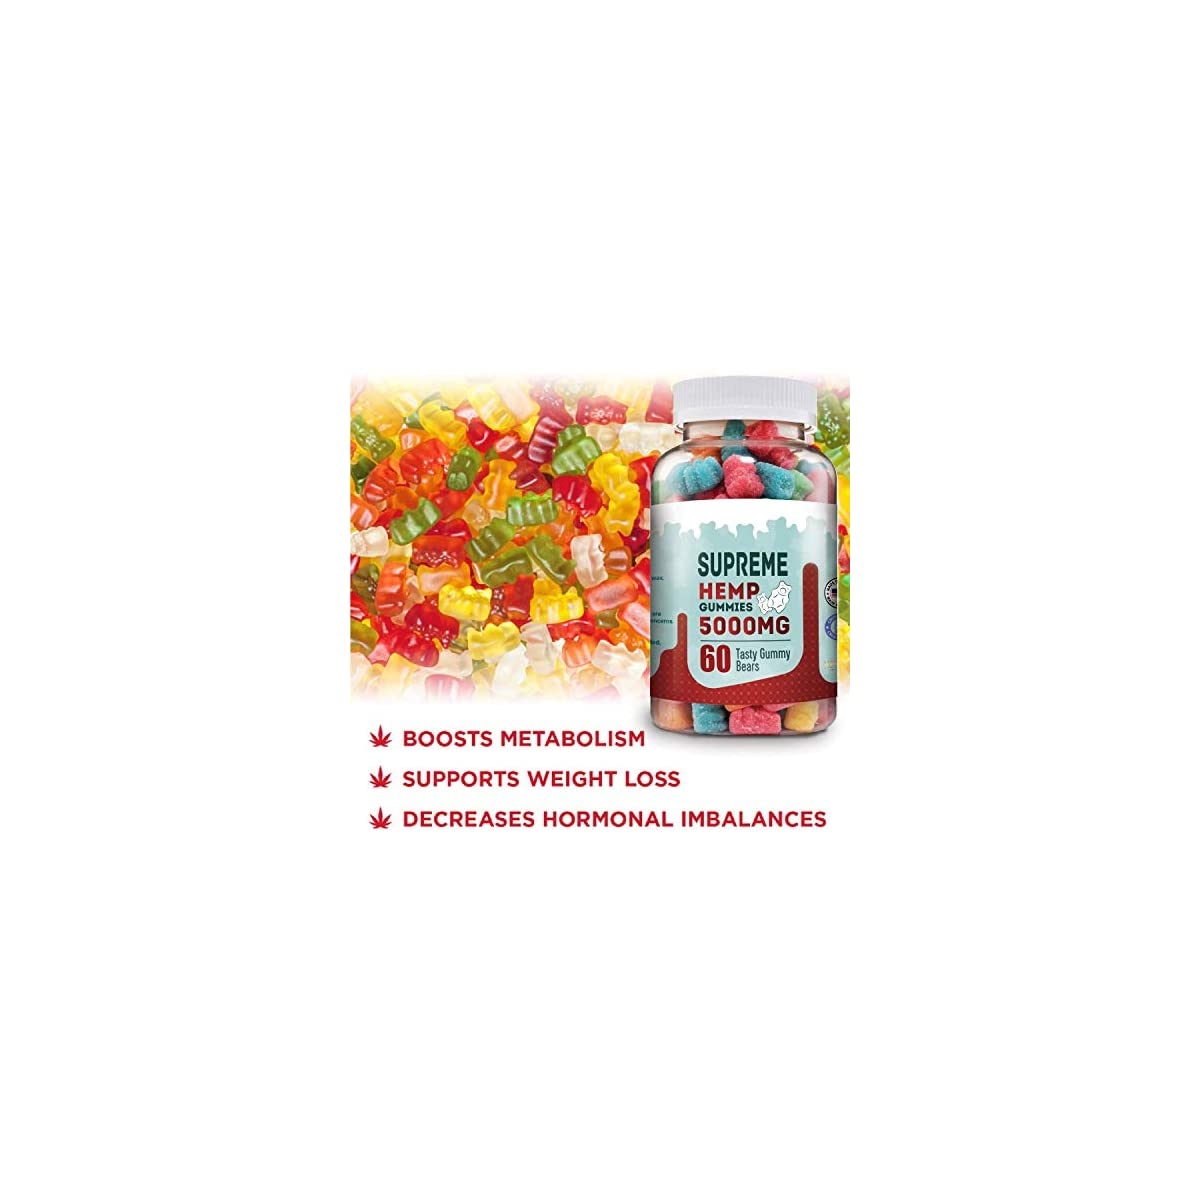 Supreme-Hemp-Big-Gummies-by-New-Age-Naturals-5000mg-100ct-50mg-Per-Gummy-Organic-Hemp-Extract-Infused-Relaxing-Pain-Relief-Stress-Anxiety-Relief